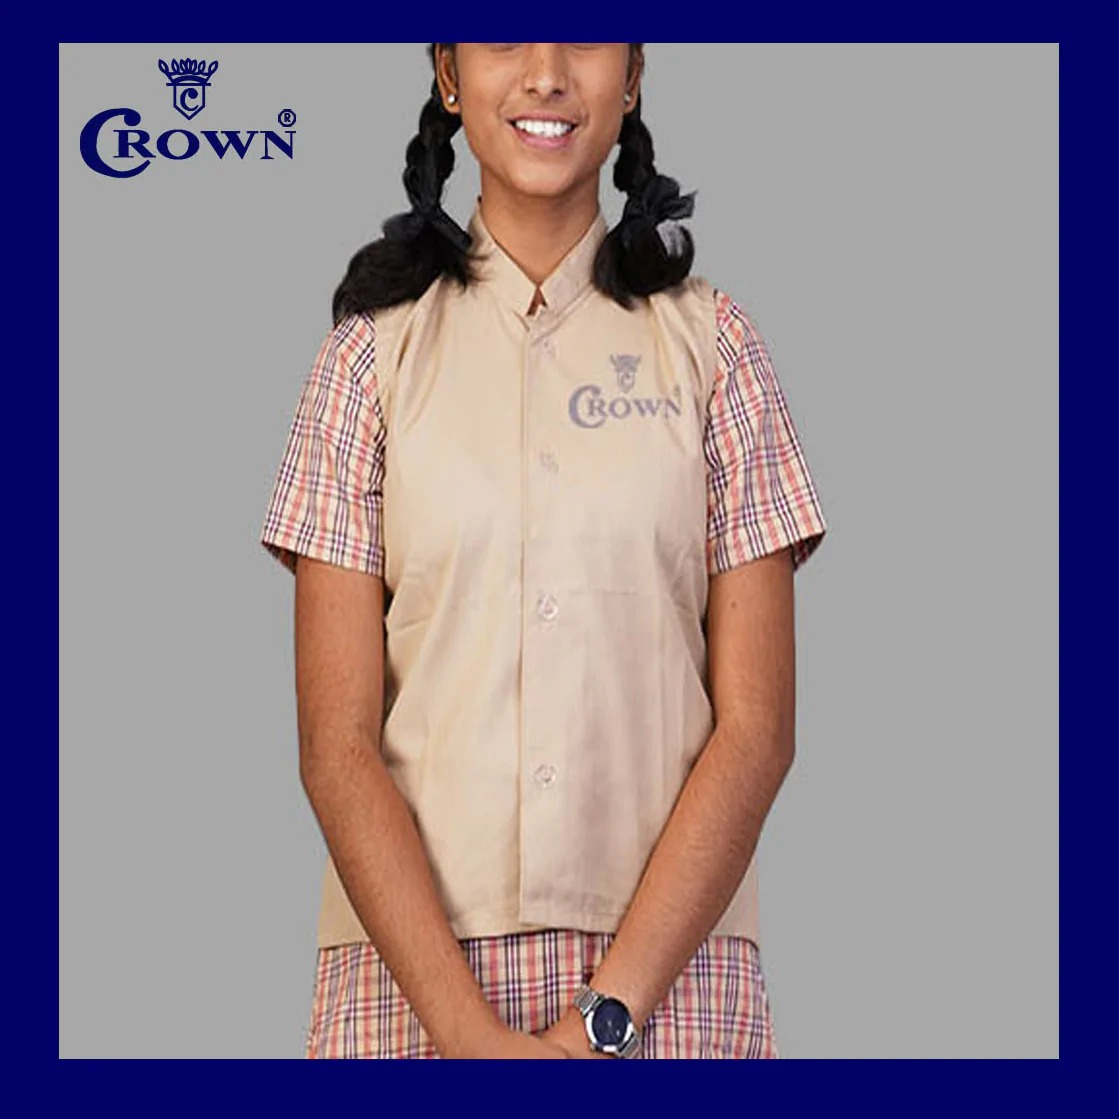 Crown TN Govt 6 - 8th Std Fawn Coat (13-14years)